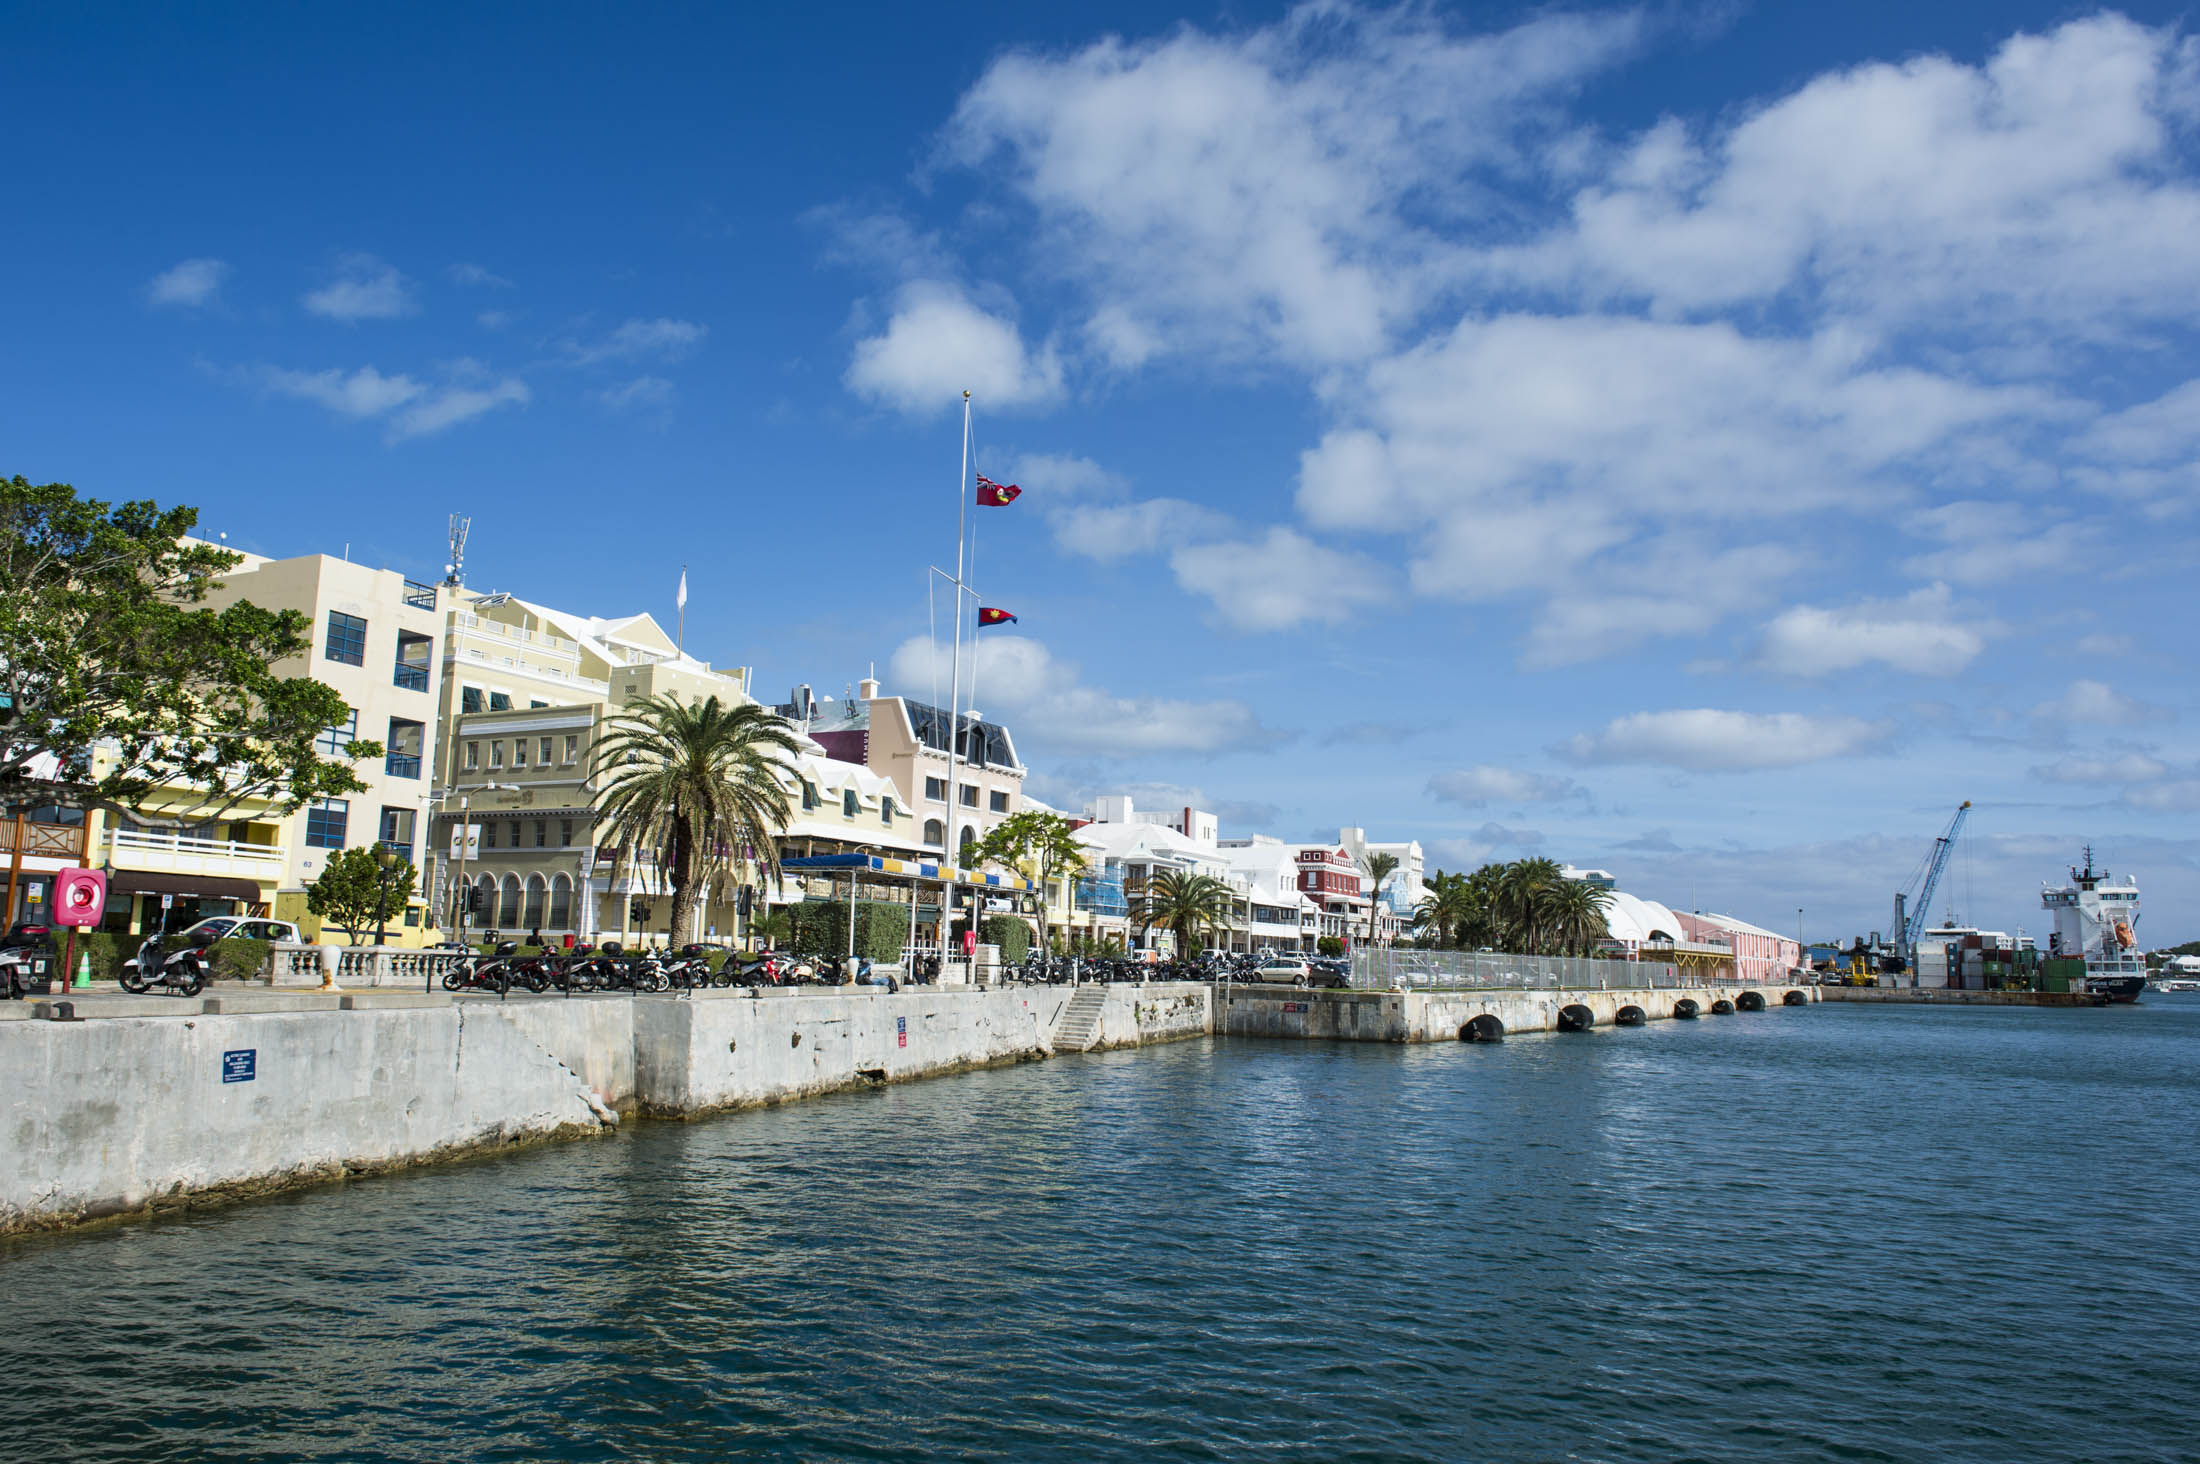 Historical seafront of Hamilton capital of, Bermuda, United Kingdom